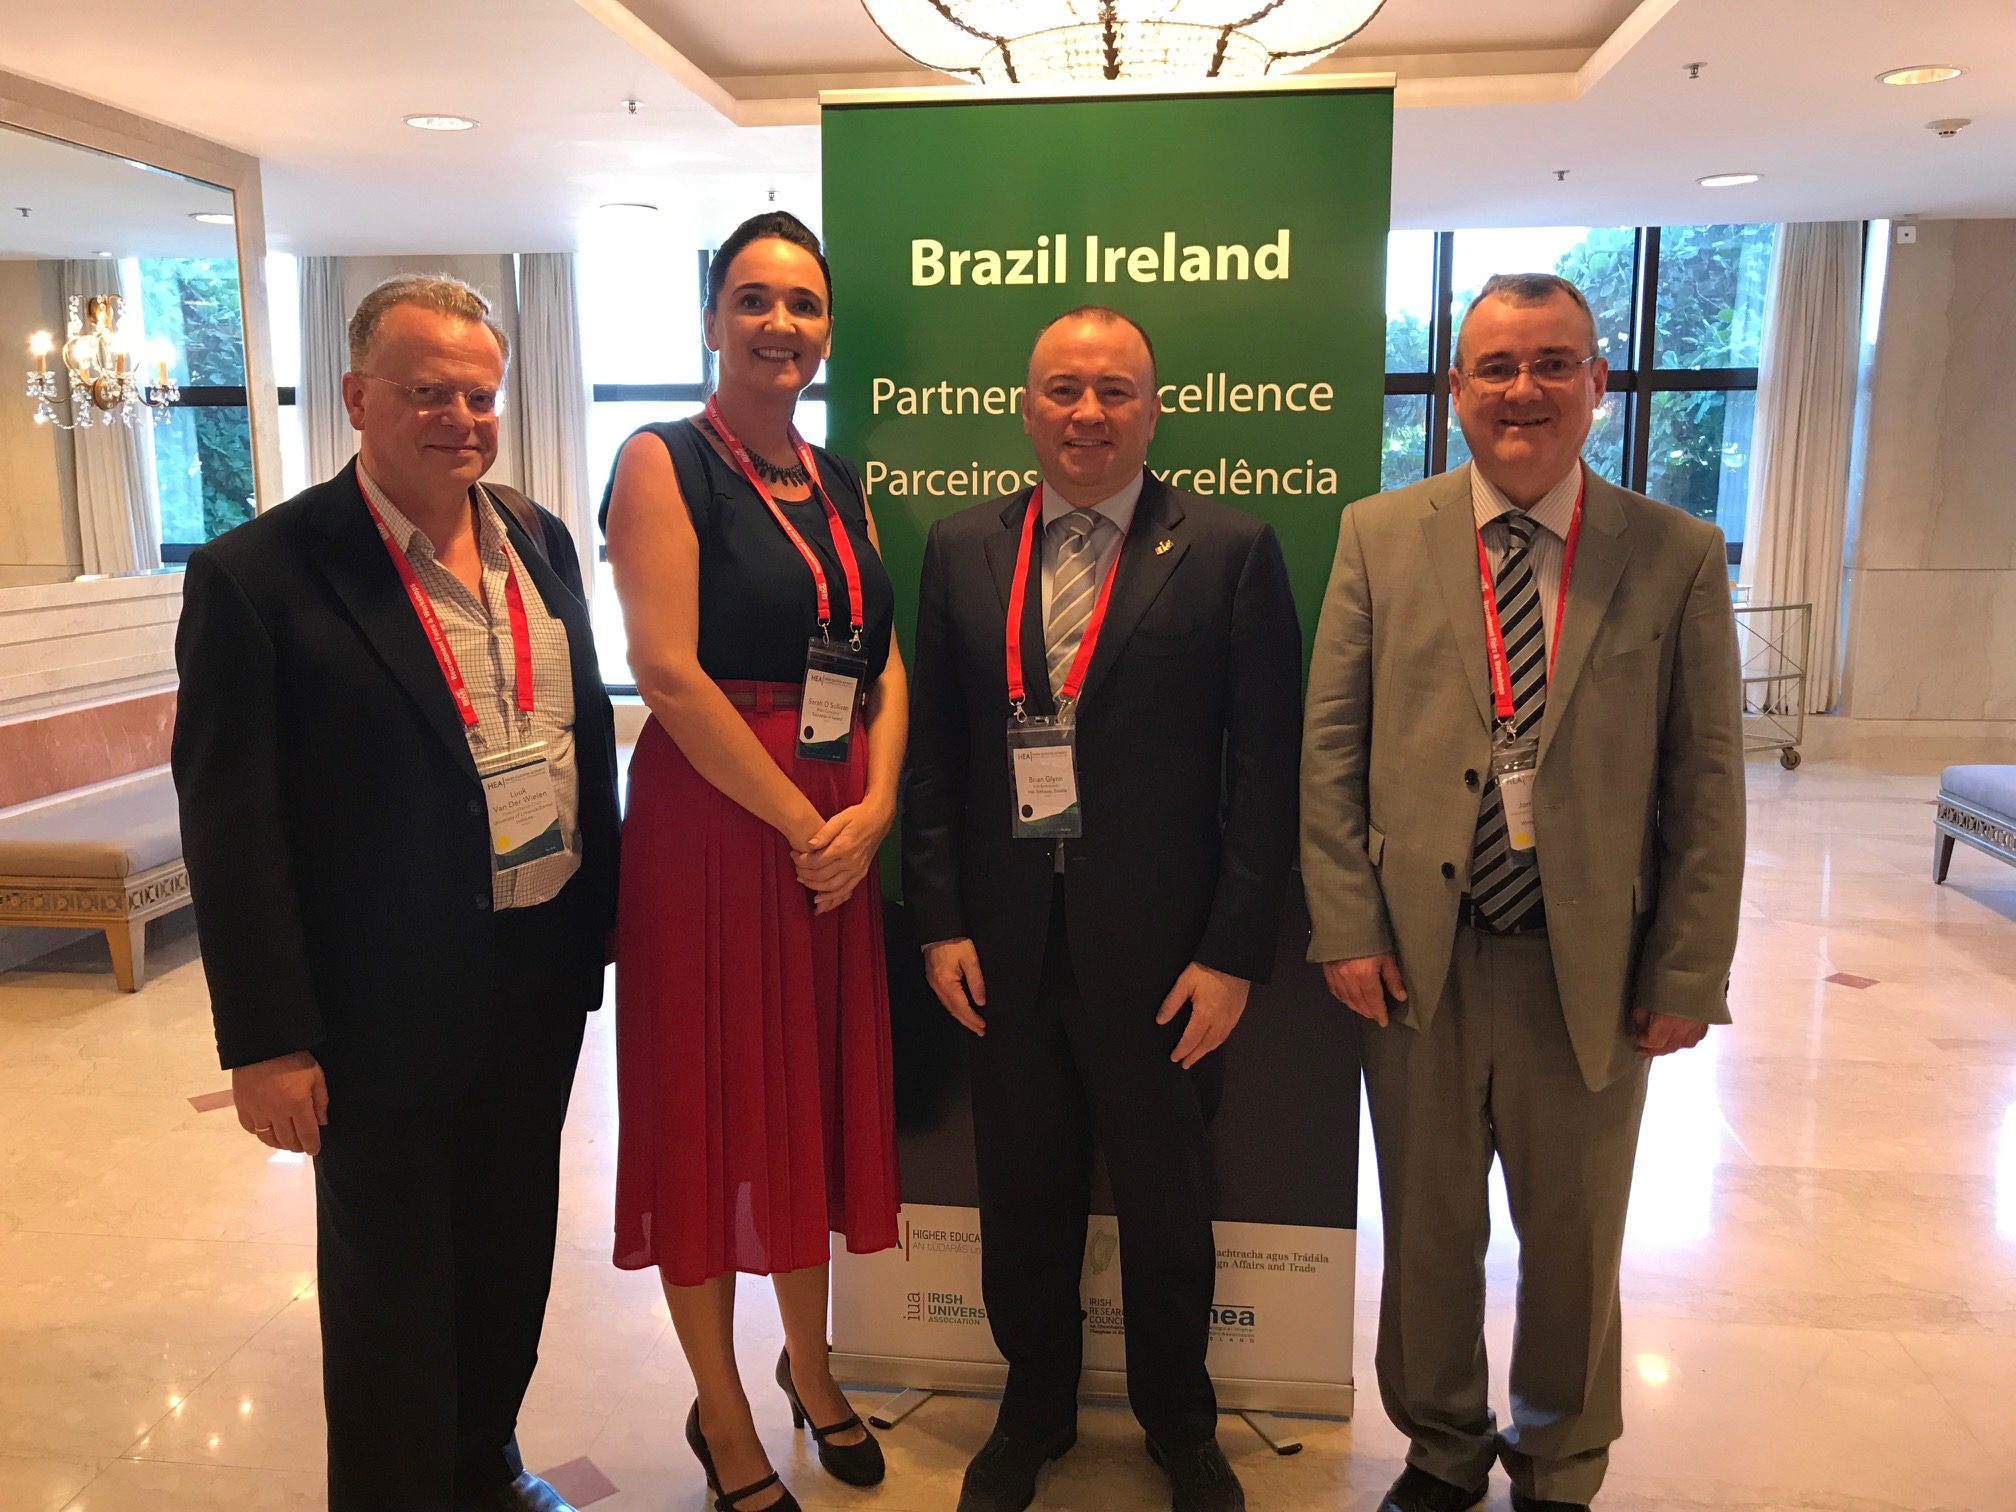 Left to right: Luuk A.M. van der Wielen, University of Limerick; Sarah O'Sullivan, Education in Ireland; Brian Glynn, Irish Ambassador to Brazil, Brasilia; James Clarke, Waterford Institute of Technology.